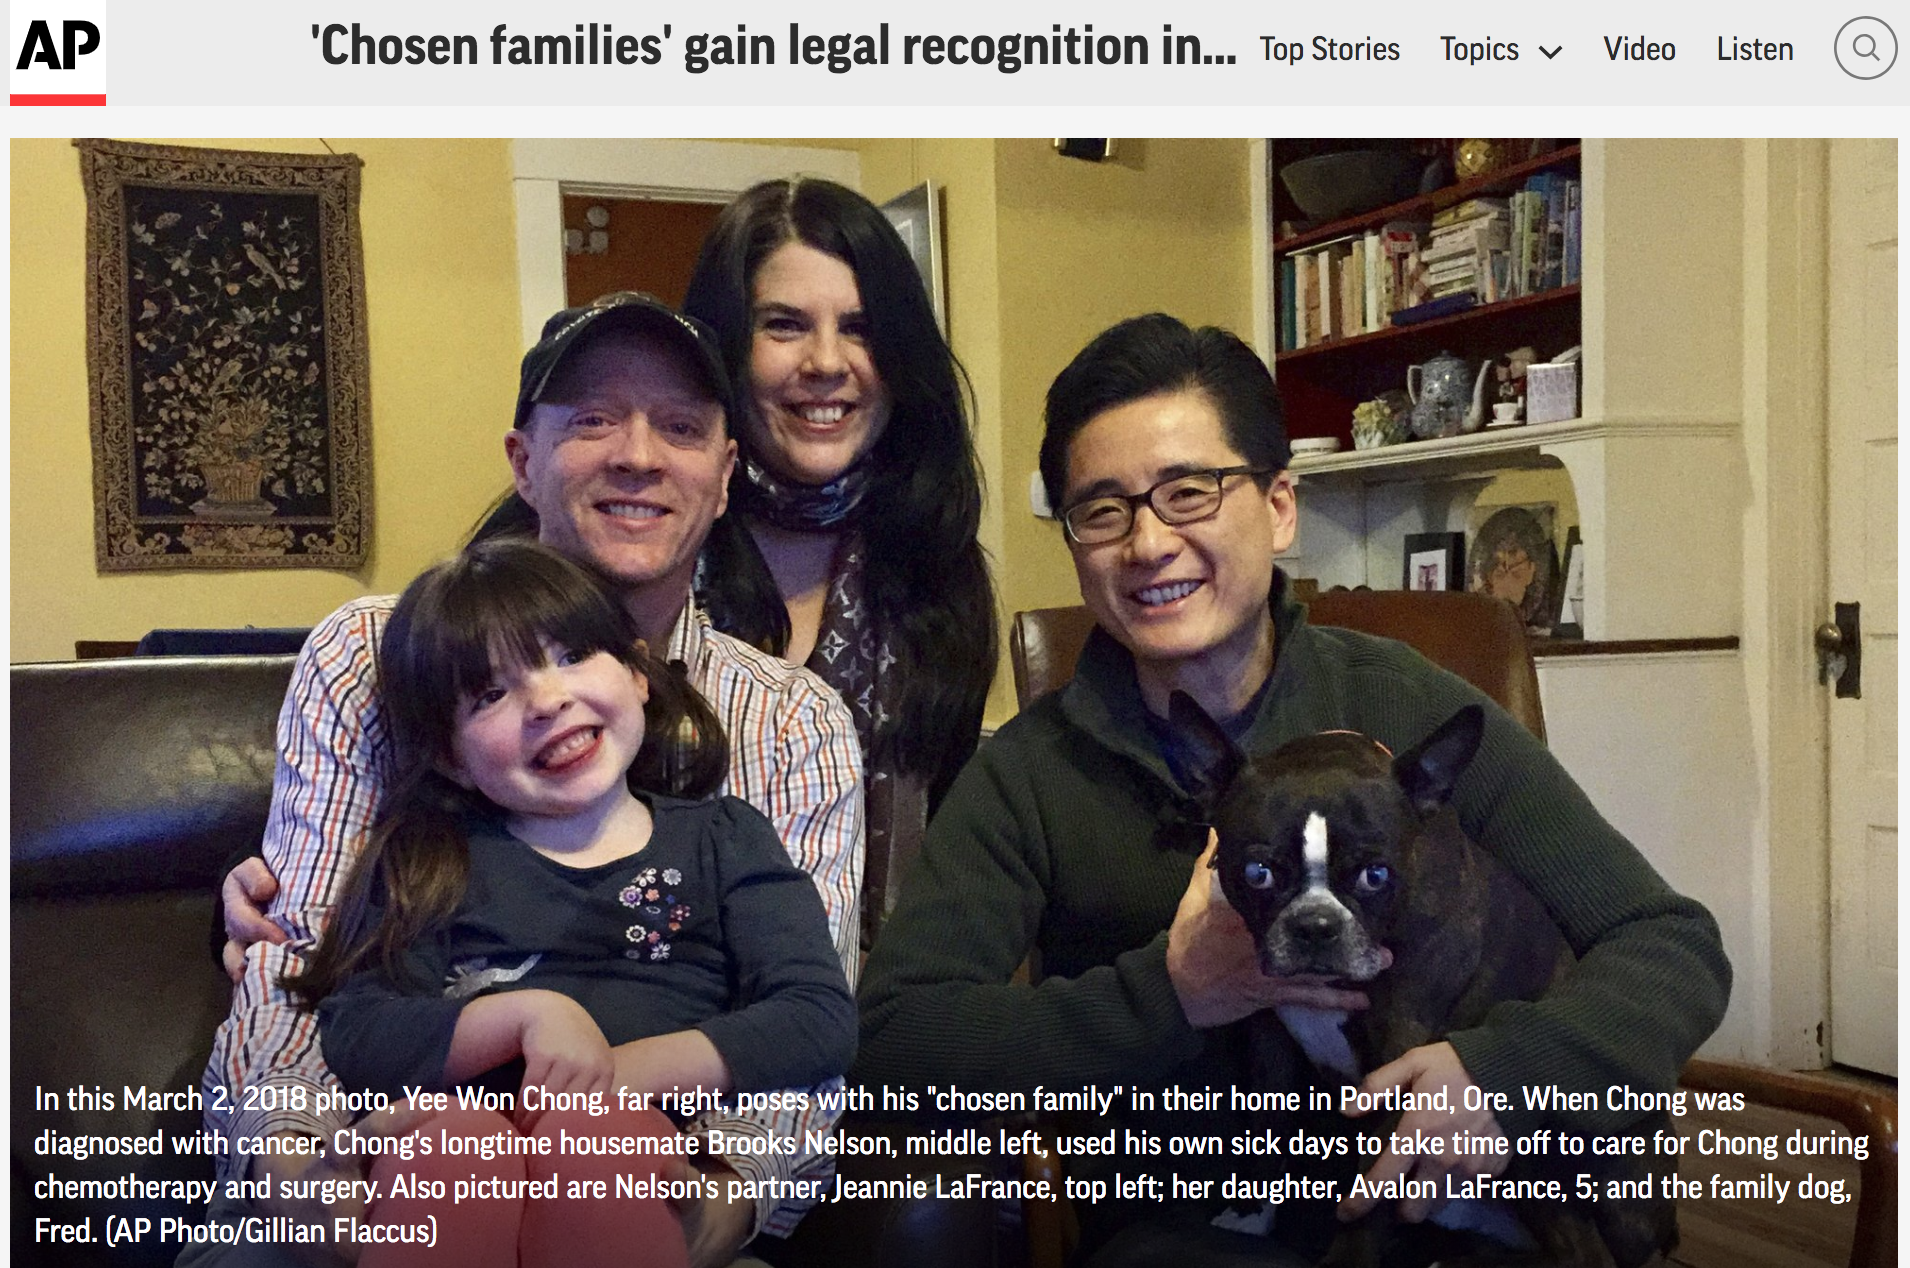 Associated Press - The concept of chosen families is a top highlight in Trans Dudes with Lady Cancer.